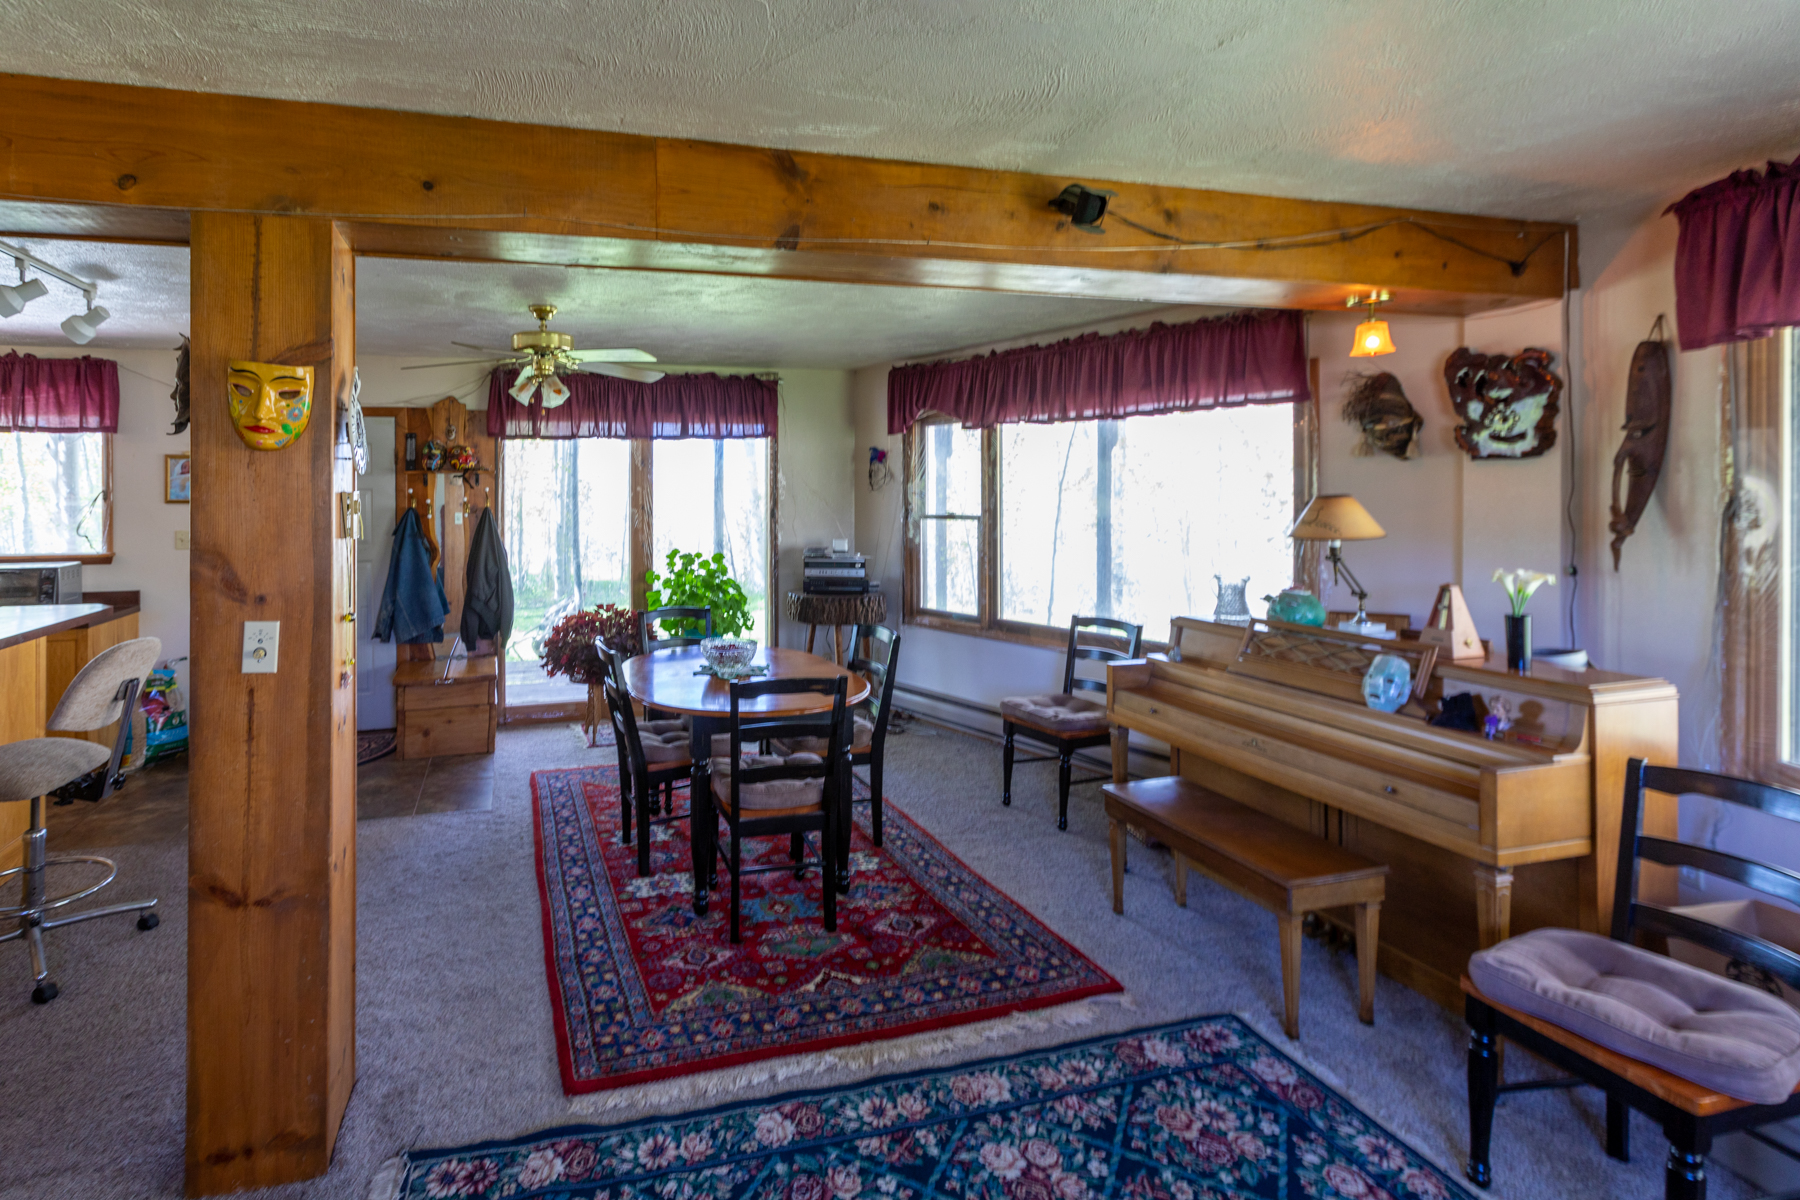 Single Family Homes for Sale at Secluded 14 Acre Property with River Frontage 76 Dragon Lane Gunnison, Colorado 81230 United States